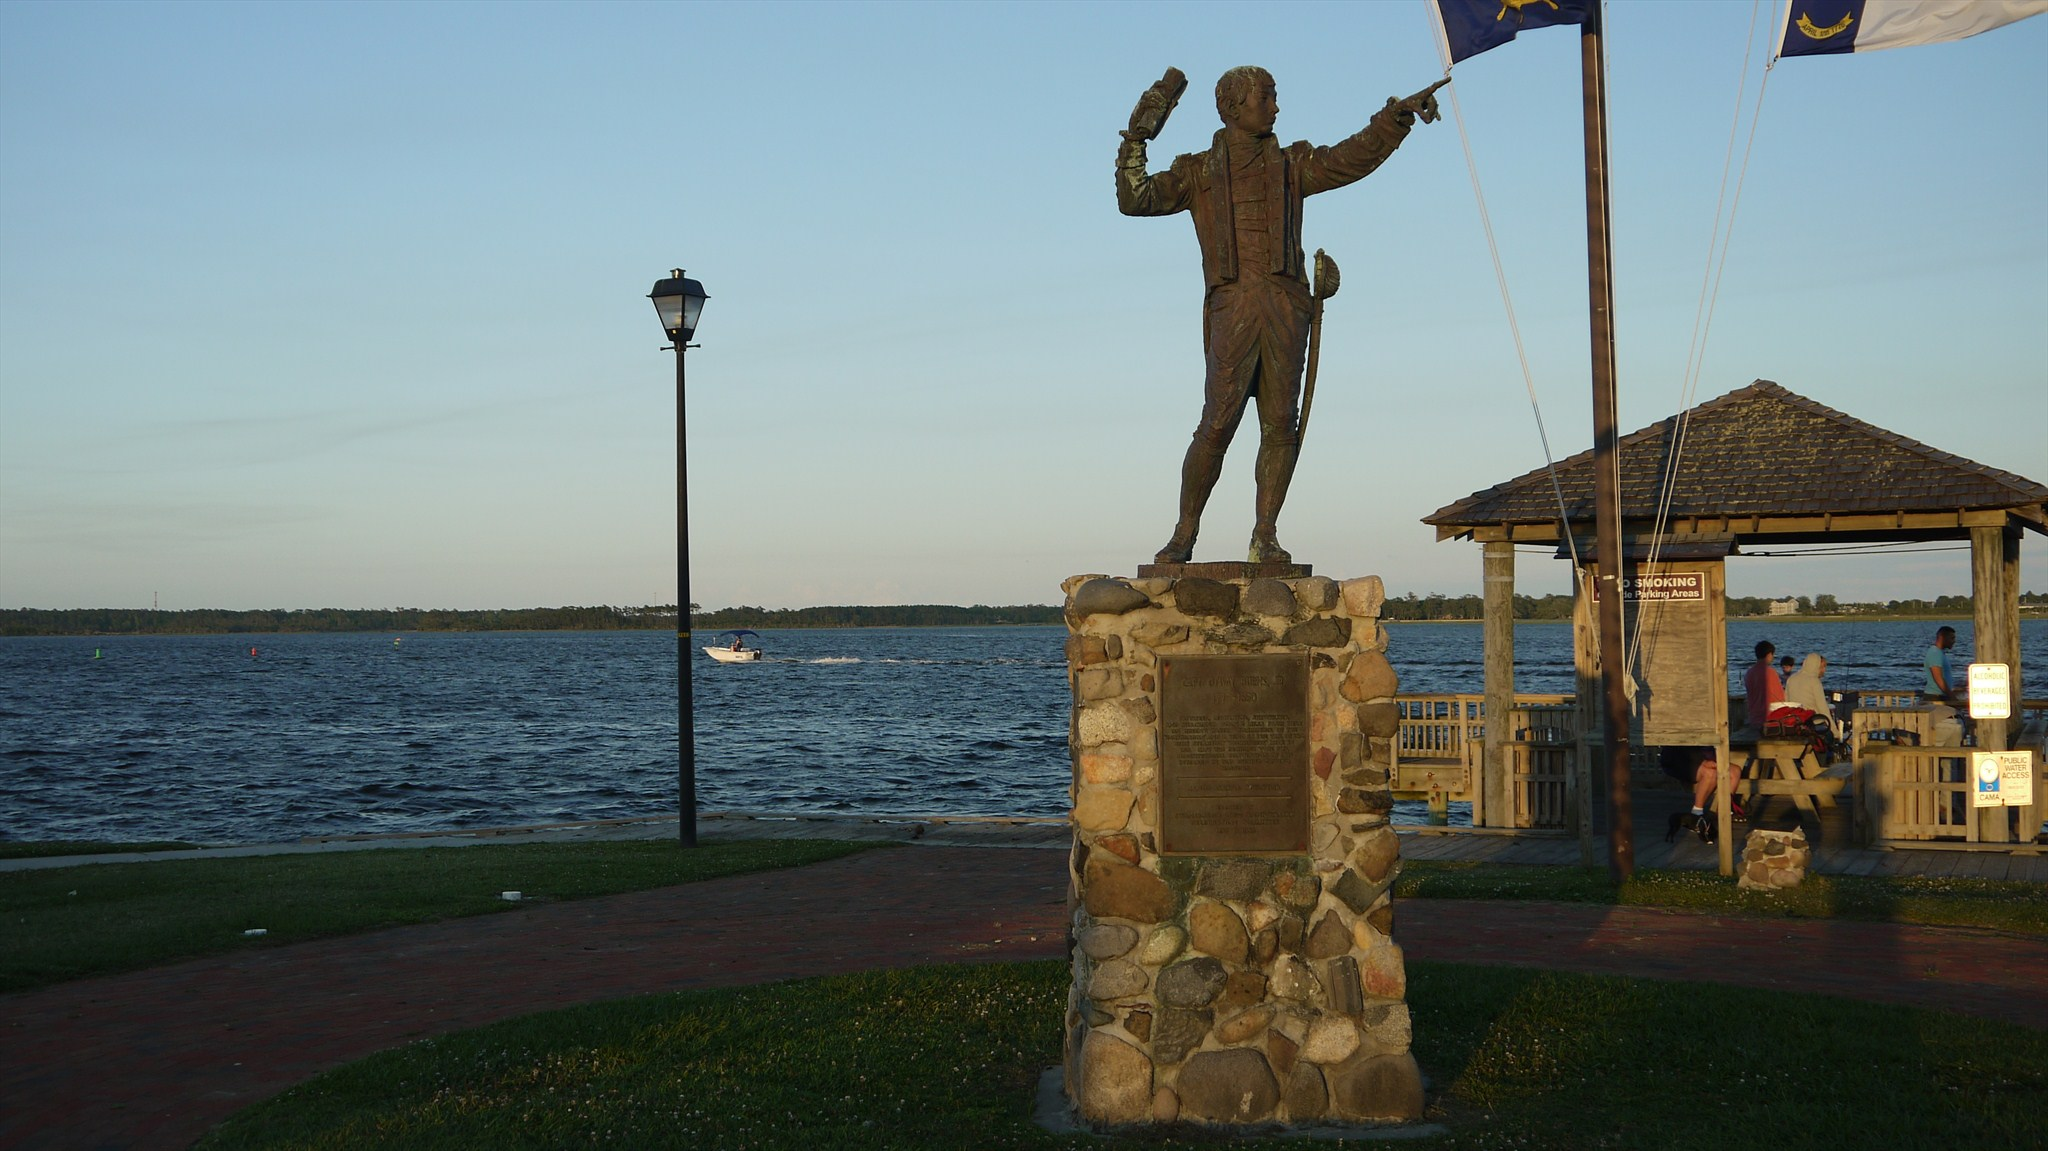 Here lies the statue, at the heart of Bicentennial Park, of Otway Burns Jr.. It was built specifically facing the water to allow Burns to watch over the very water that his life revolved around. Famous privateer and naval hero that lies at the heart